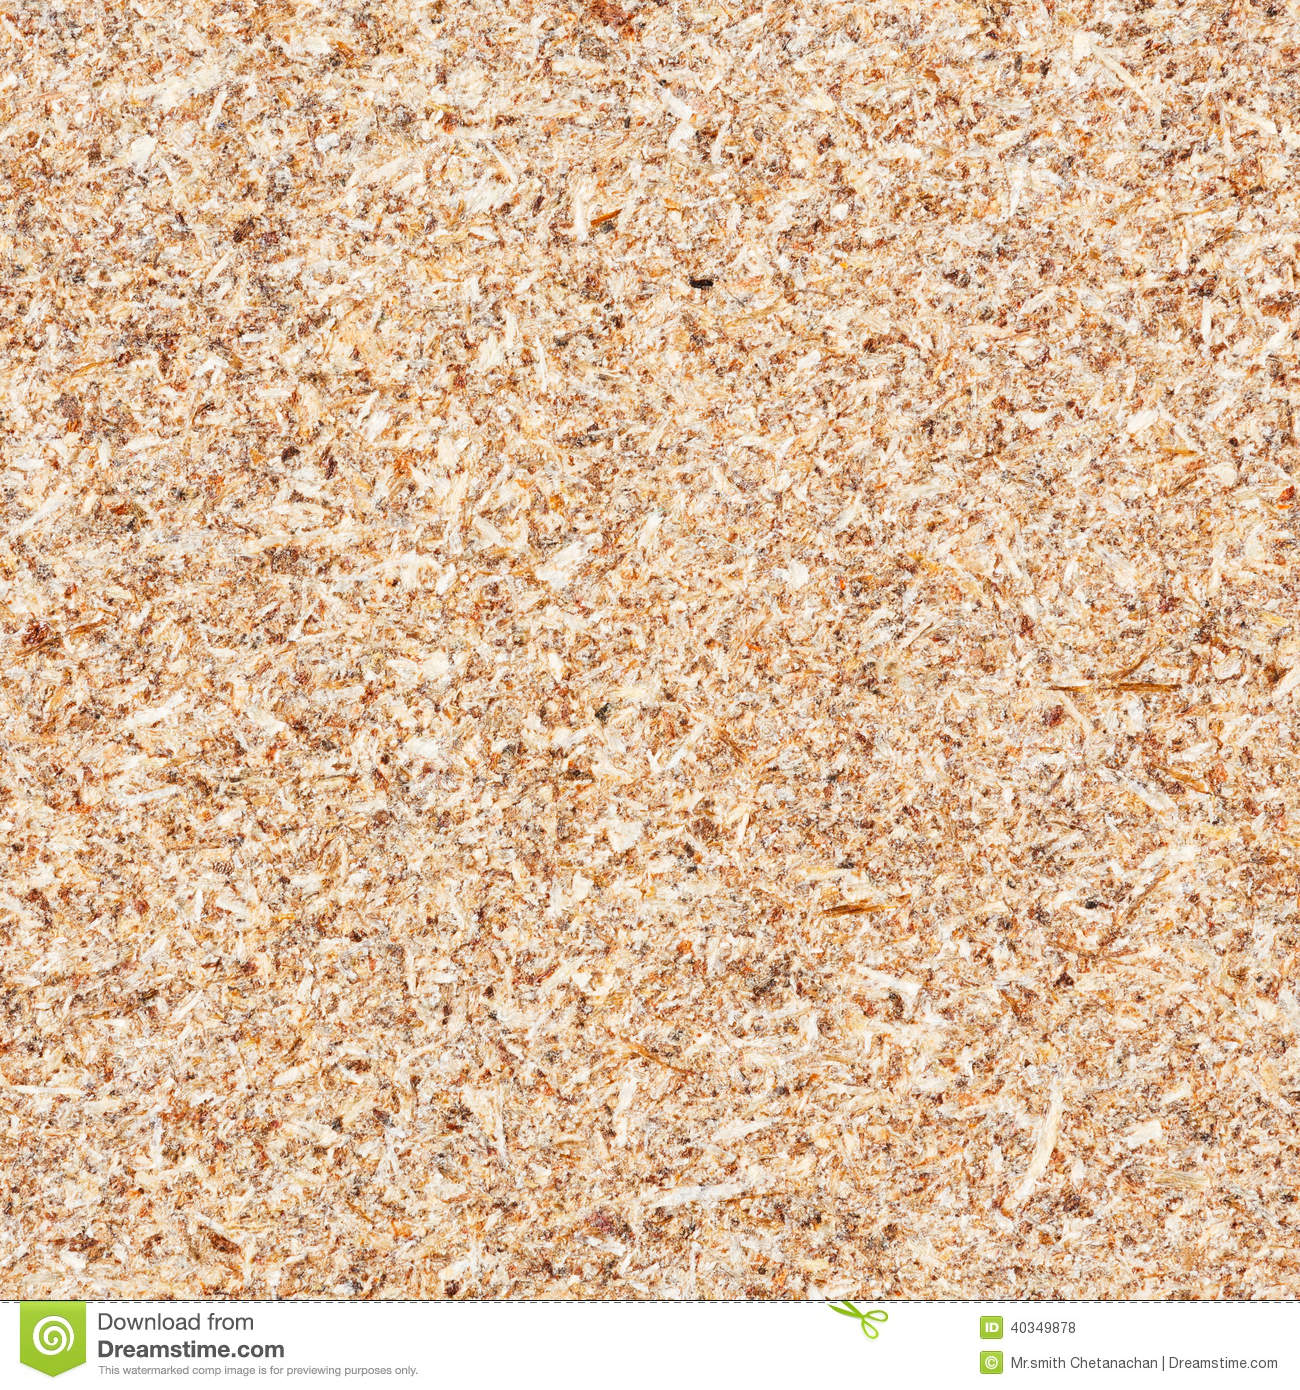 Particle board texture stock photo image of density